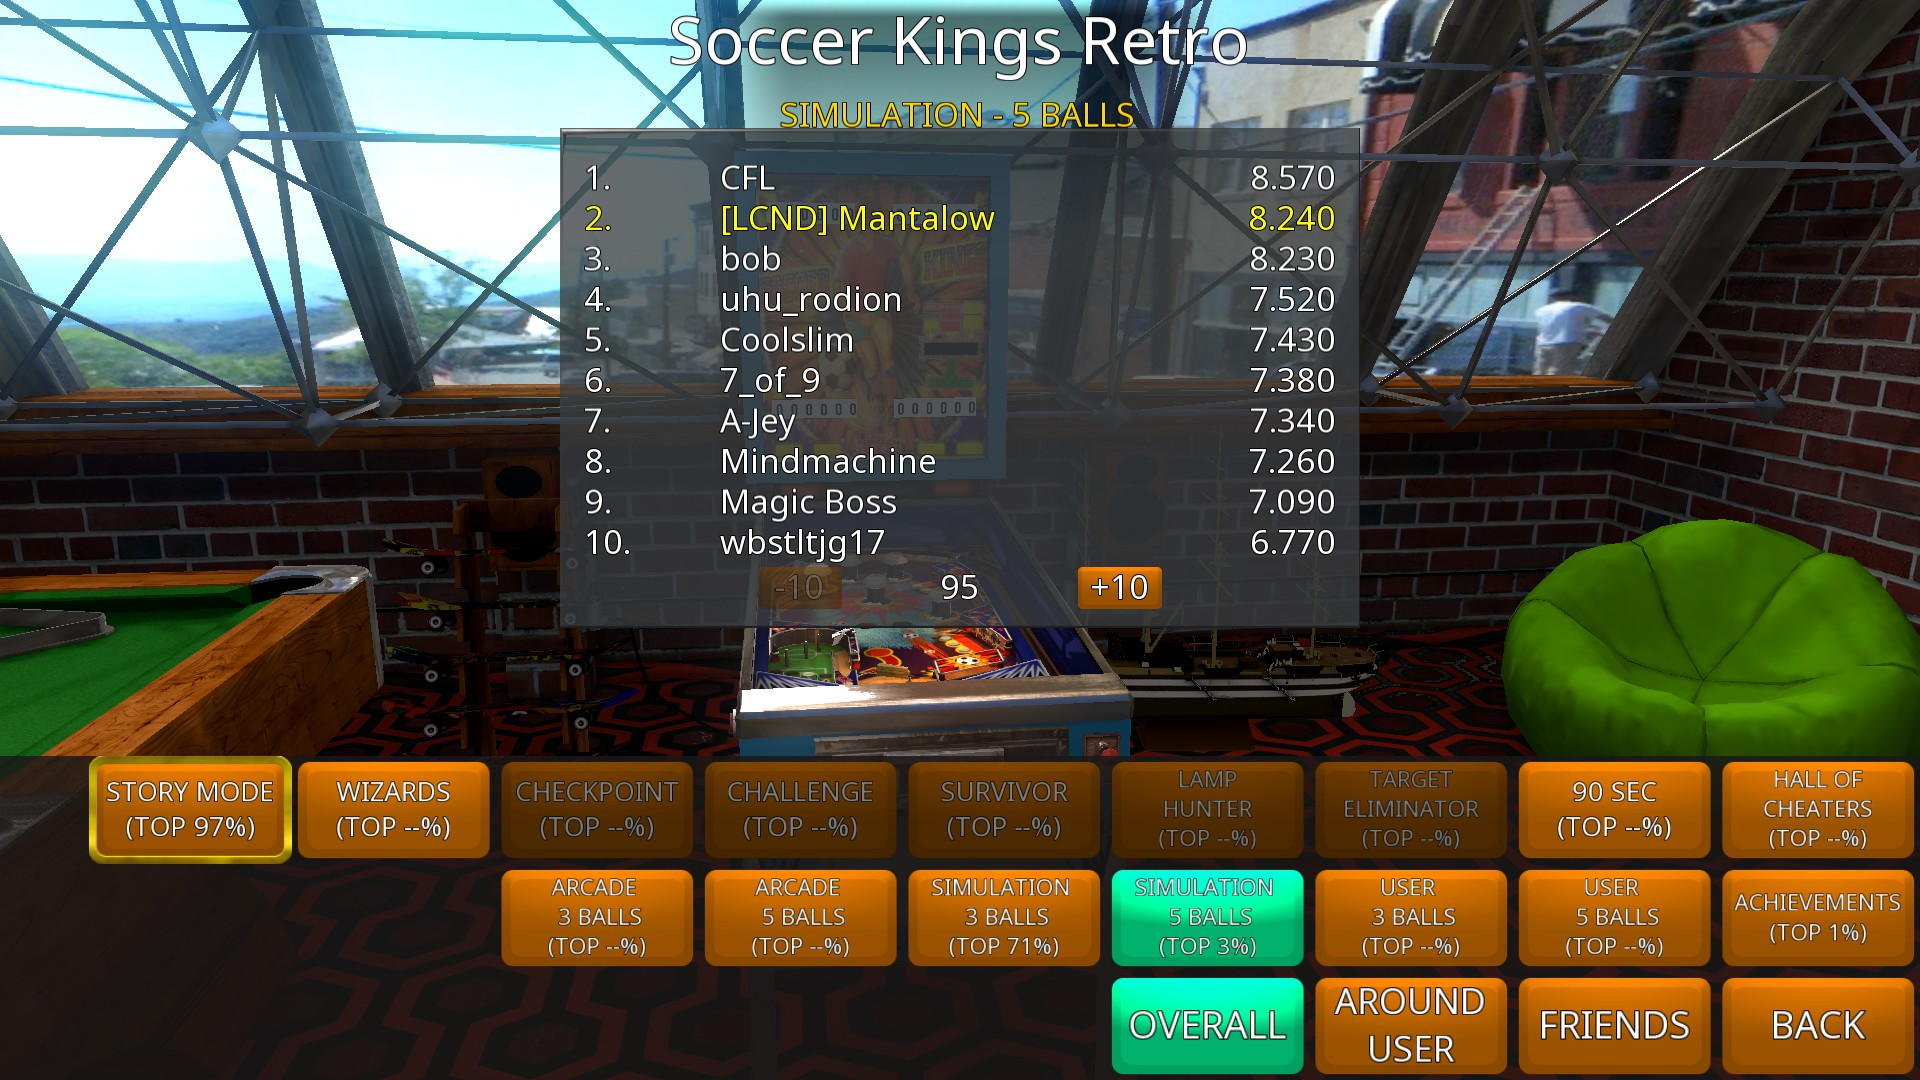 Mantalow: Zaccaria Pinball: Soccer Kings 2018 Retro Table [5 Balls] (PC) 8,240 points on 2018-09-17 01:45:39